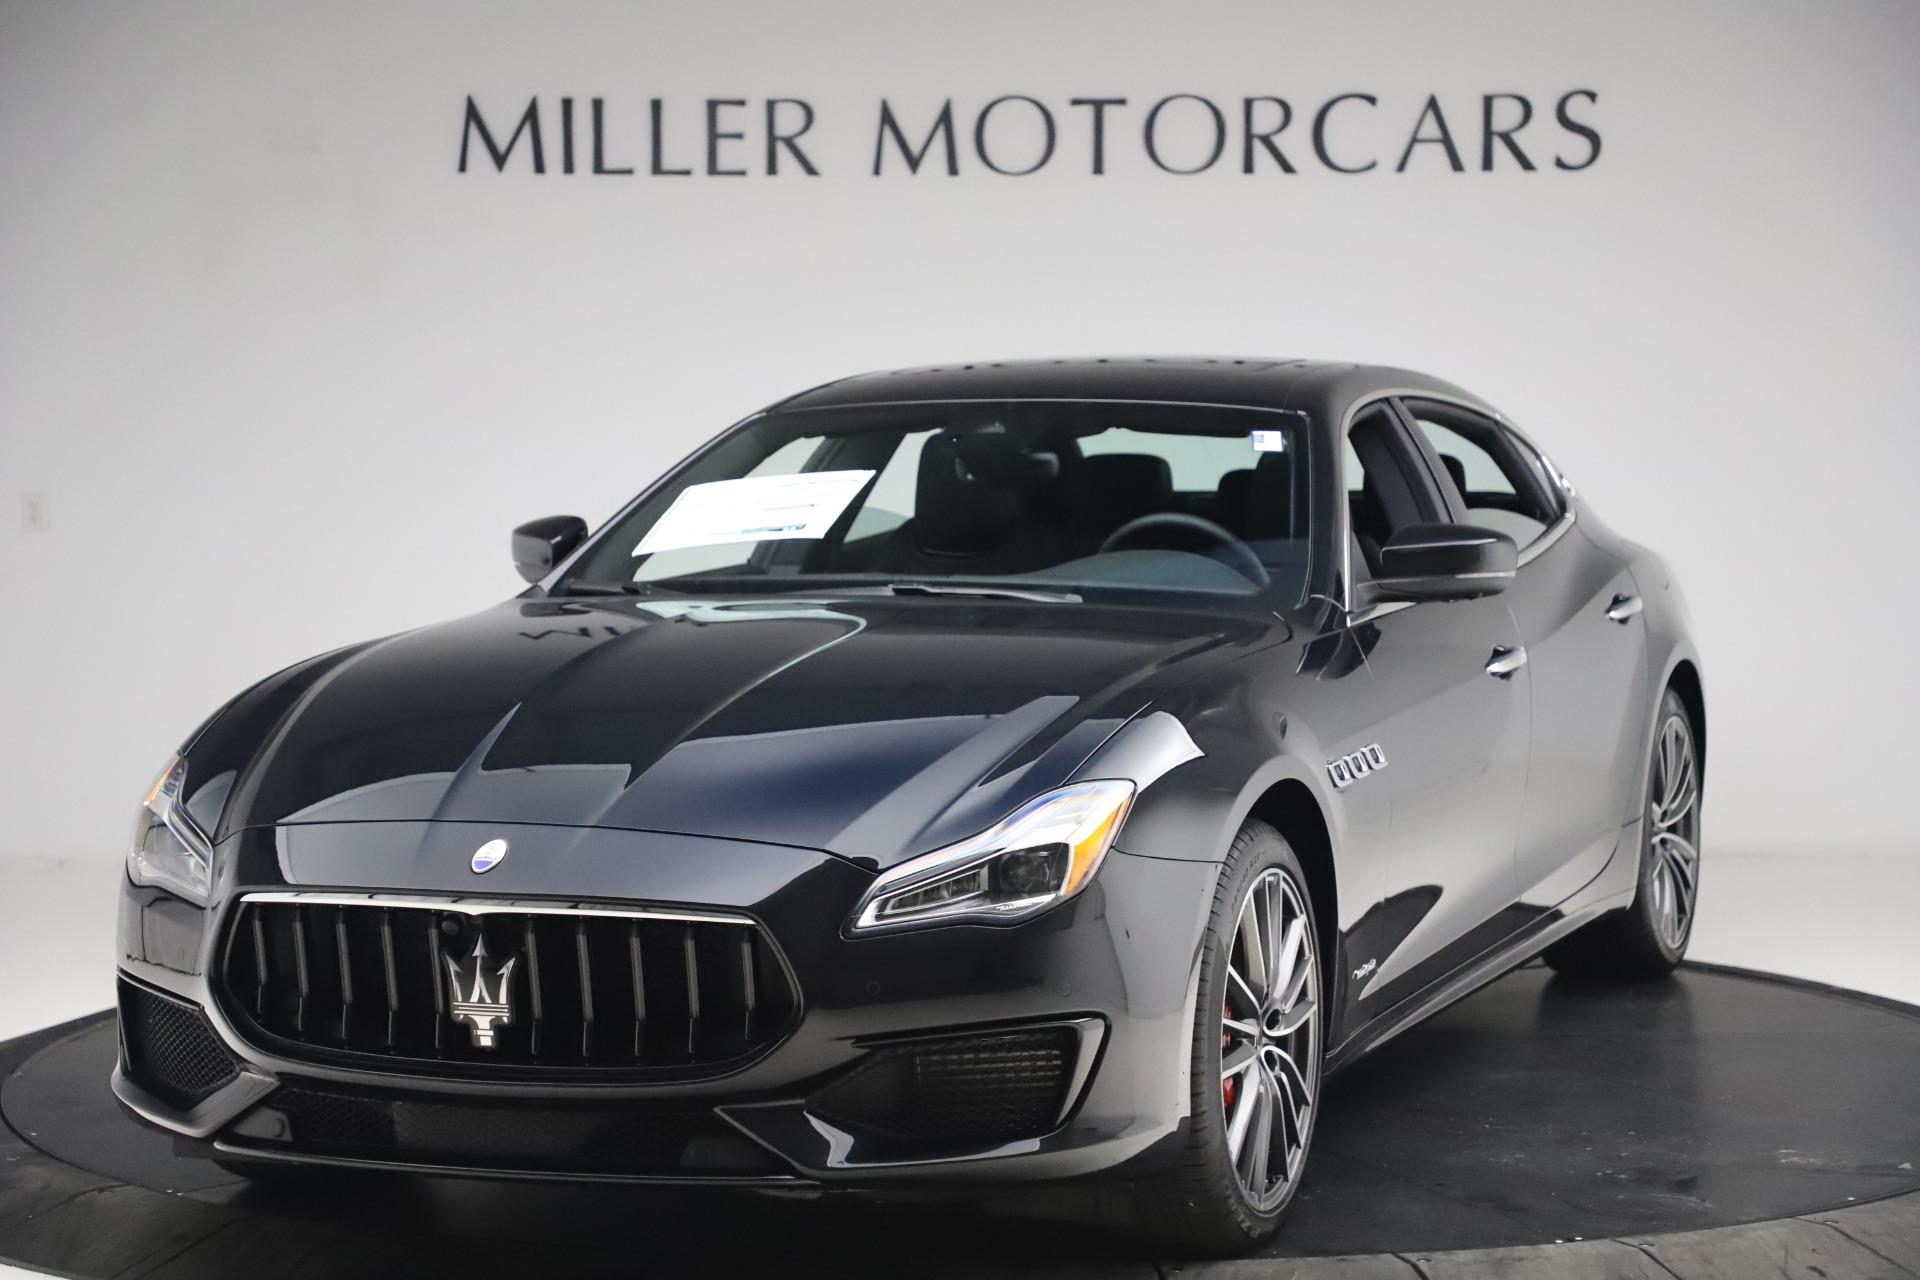 New 2021 Maserati Quattroporte S Q4 GranSport for sale $129,185 at Maserati of Westport in Westport CT 06880 1